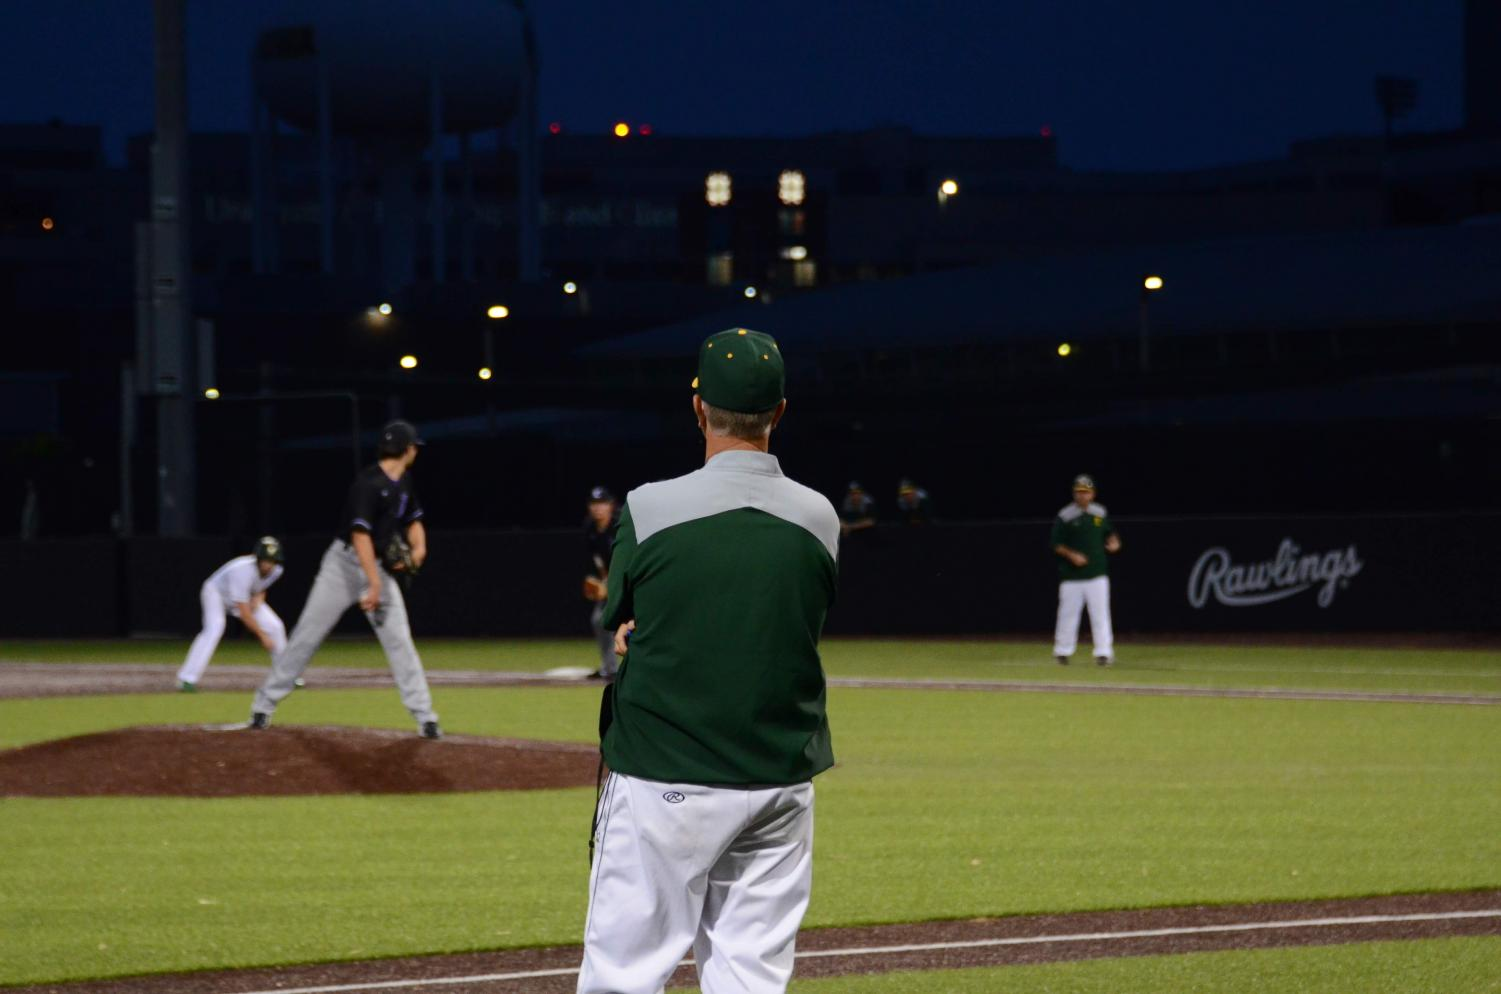 Head coach Charlie Stumpff observes the game from his position as third base coach during a game against Liberty on June 3.